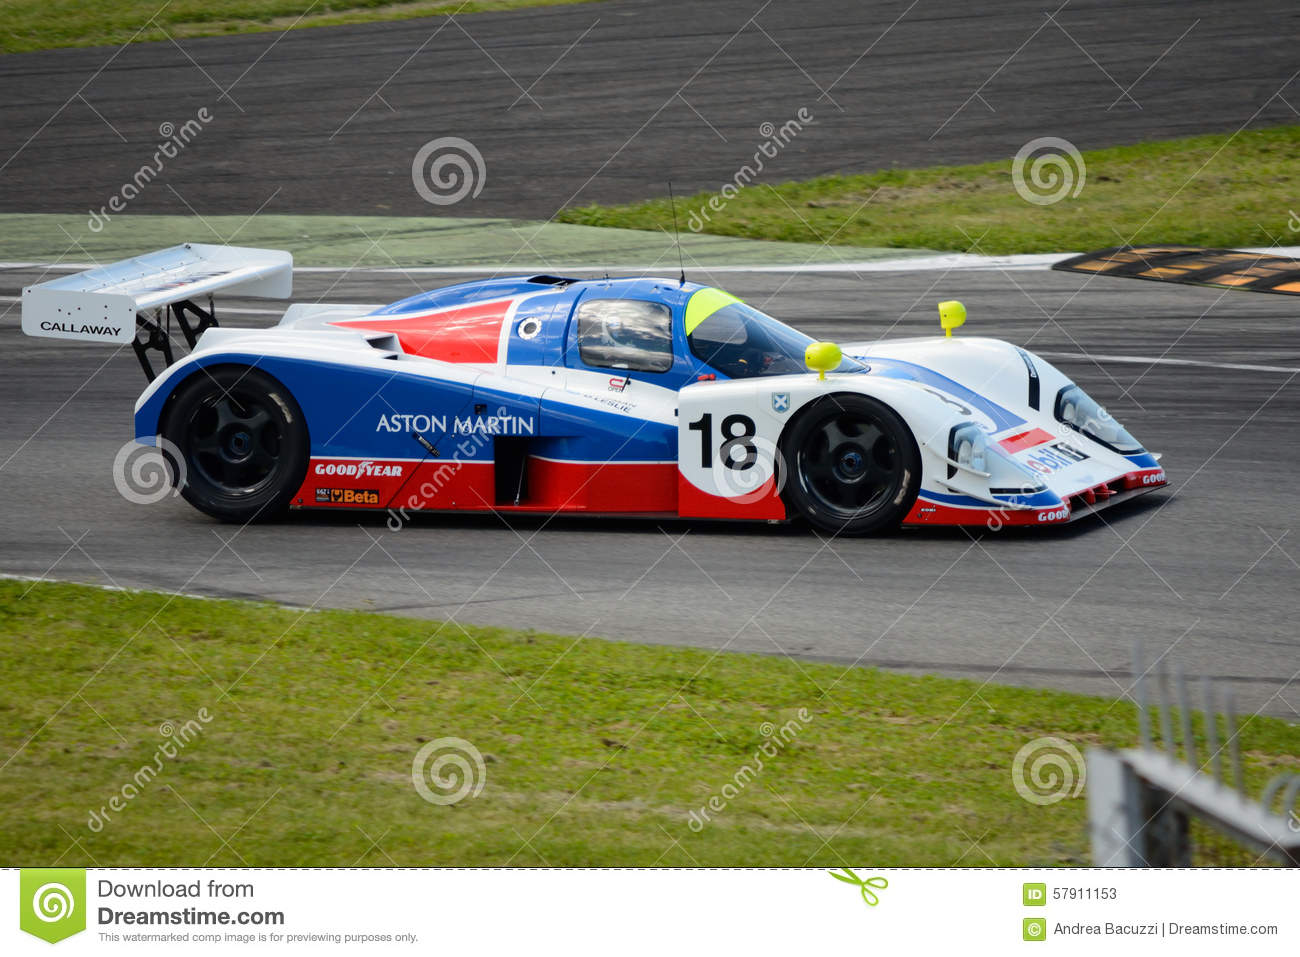 1989 aston martin amr1 group c prototype at monza in 2015 editorial stock photo image 57911153. Black Bedroom Furniture Sets. Home Design Ideas